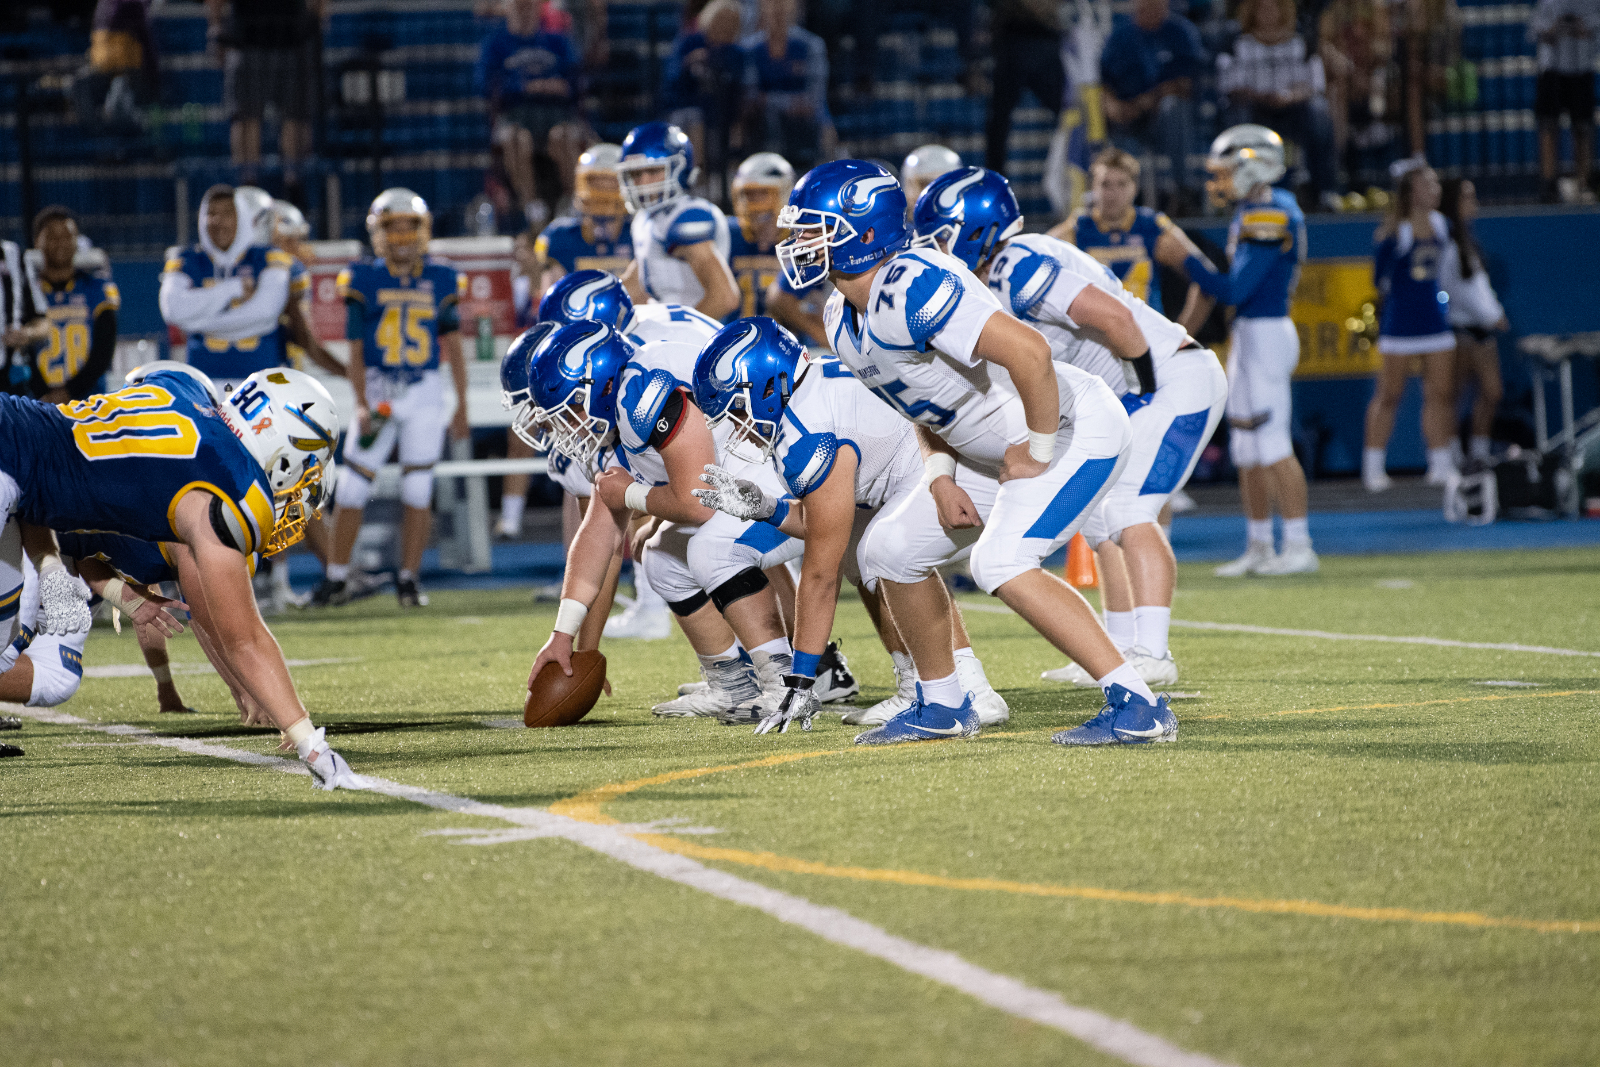 Miamisburg at Centerville 9/20/19 (football game and ticket information)